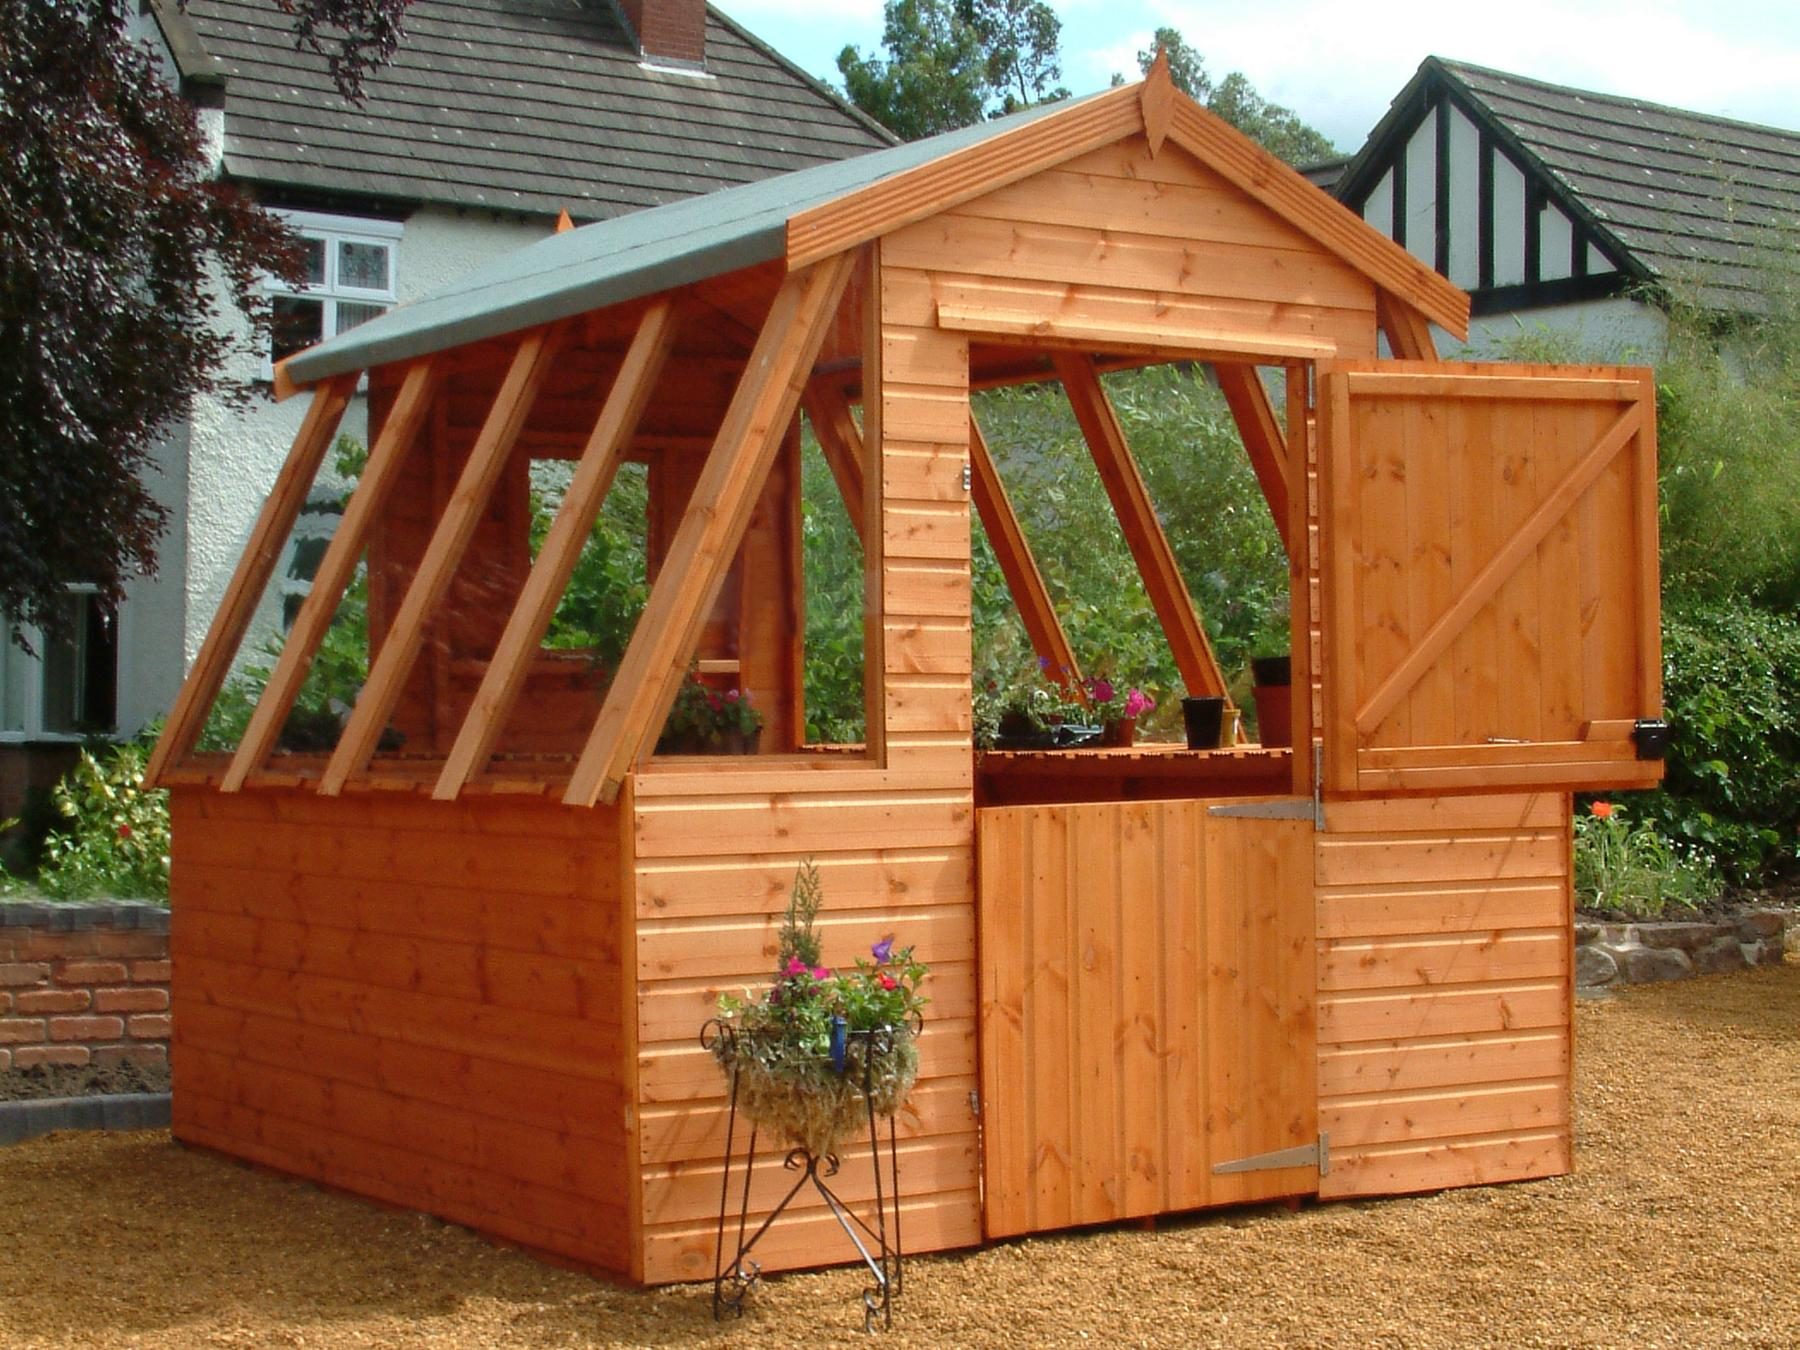 sheds designs obtaining free shed plans on the internet shed plans